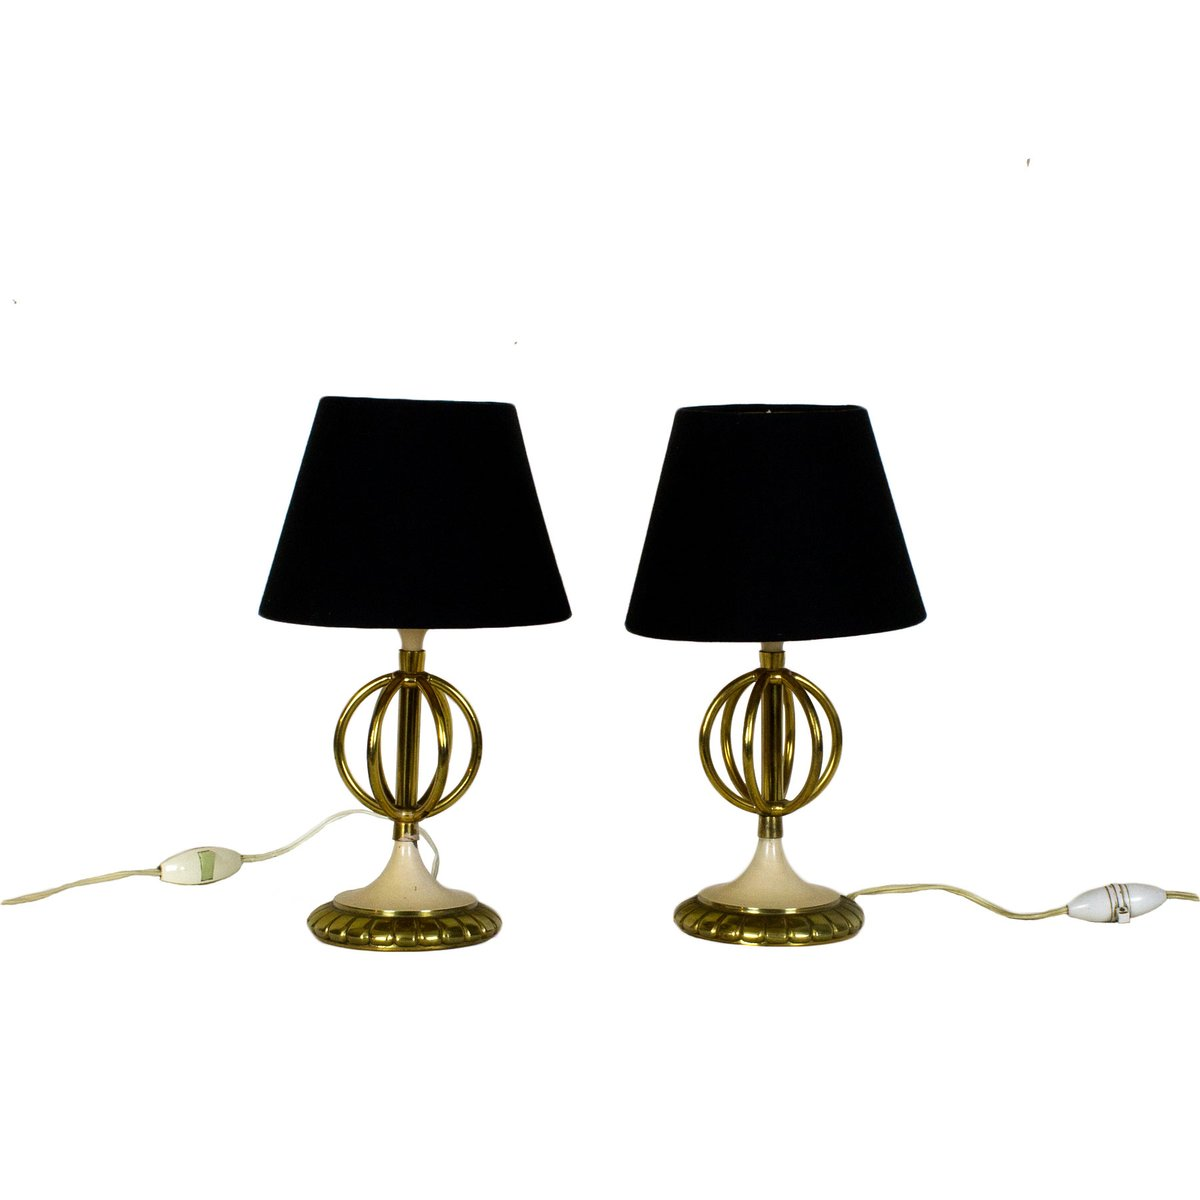 Awesome Small French Table Lamps, 1950s, Set Of 2